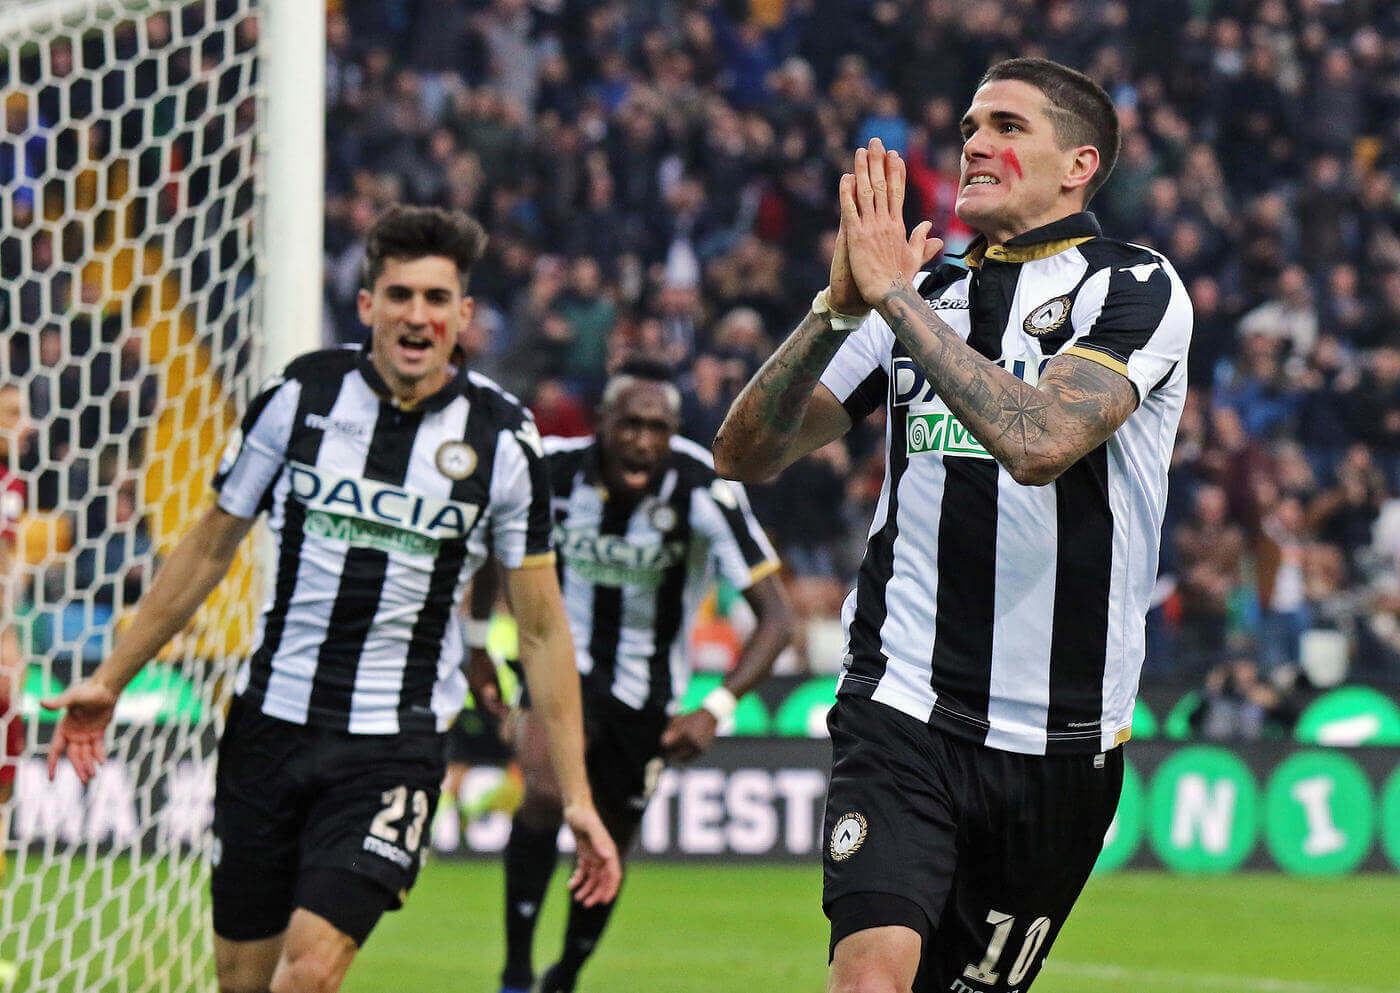 soi-keo-udinese-vs-inter-luc-2h45-ngay-3-2-2020-1